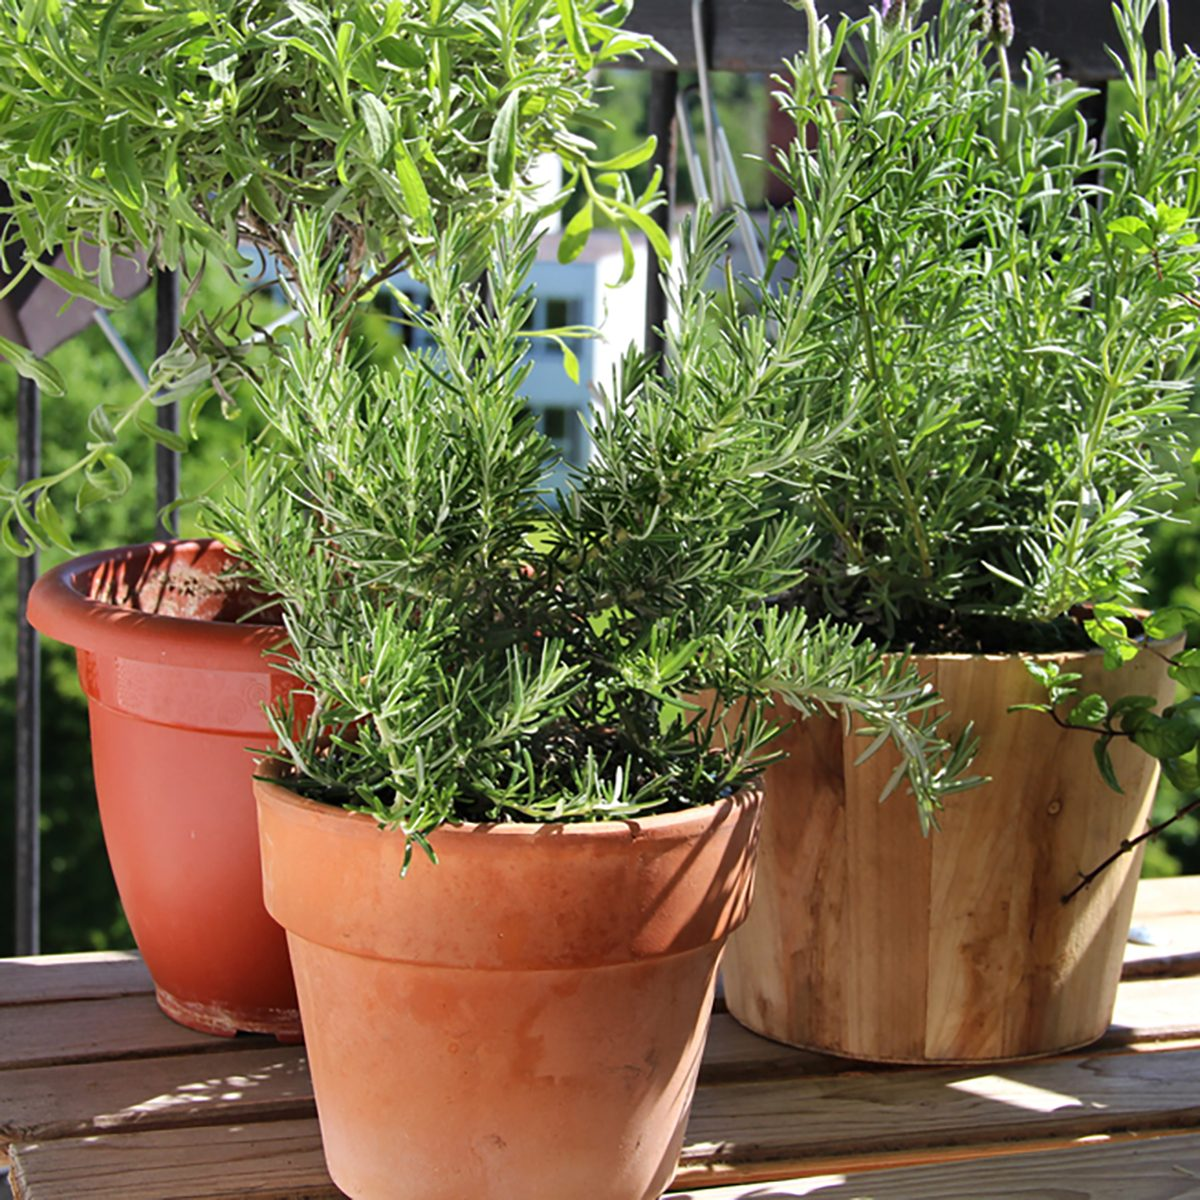 Rosemary, mint, lavender and other herbs in the pot